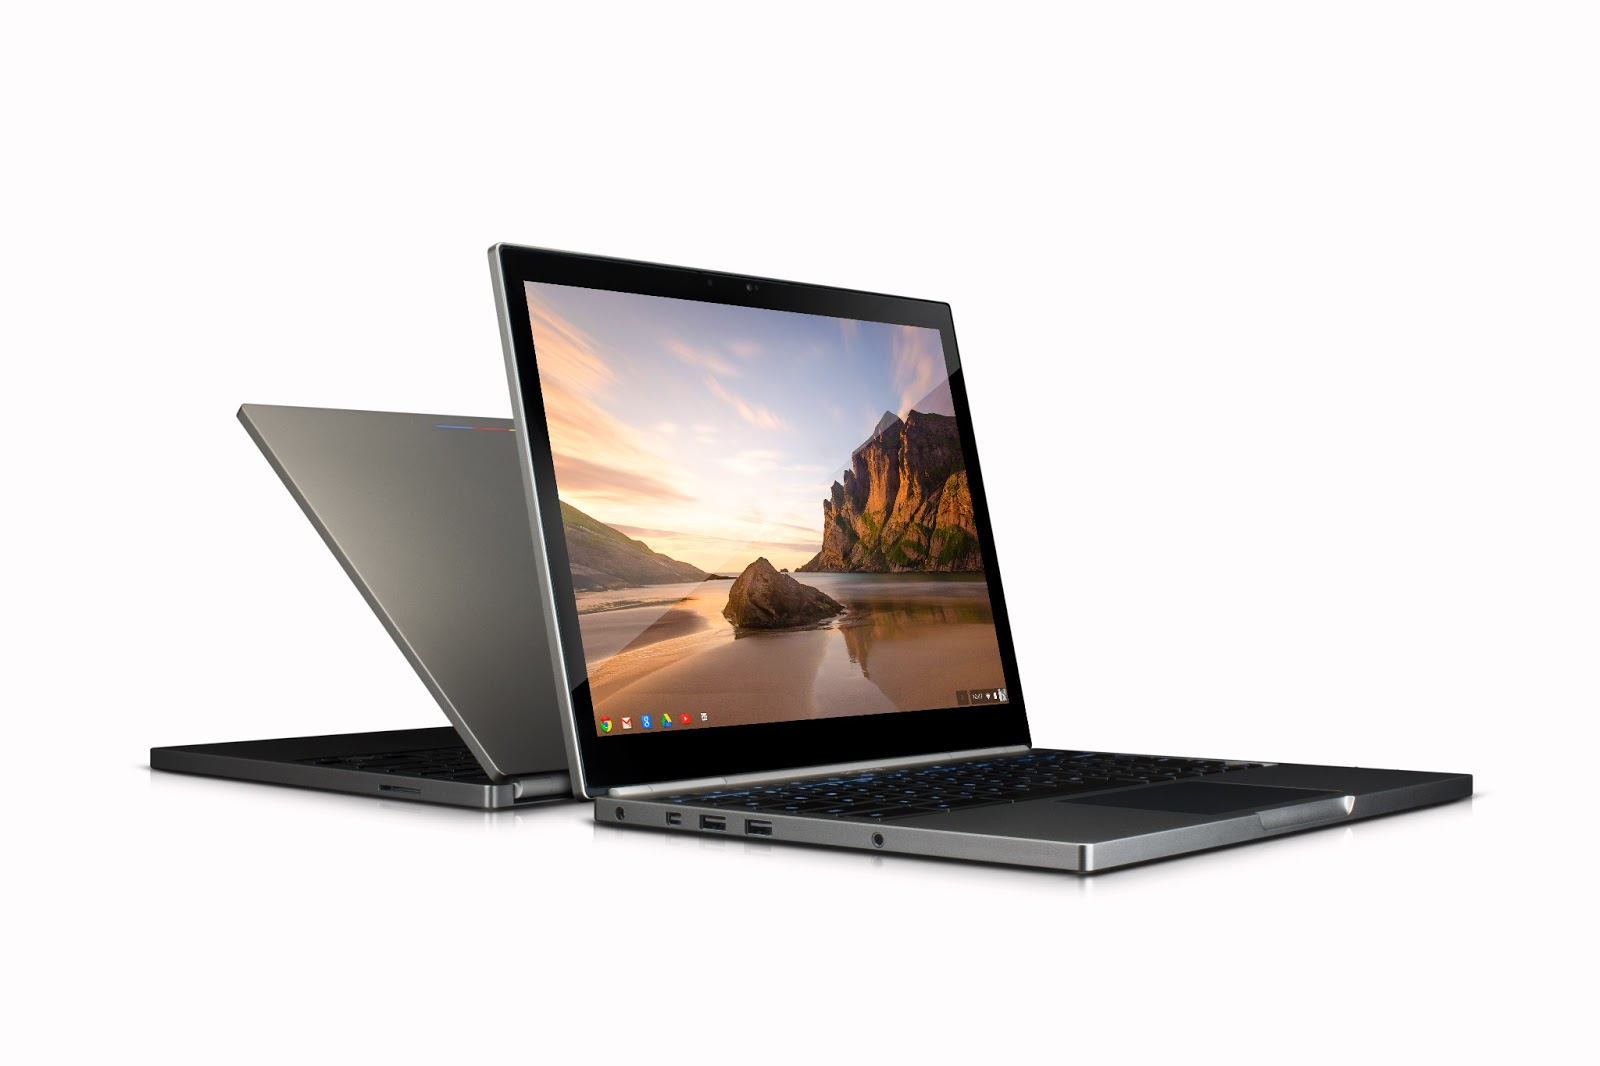 Chromebook Pixel 2 - The Best Chromebook